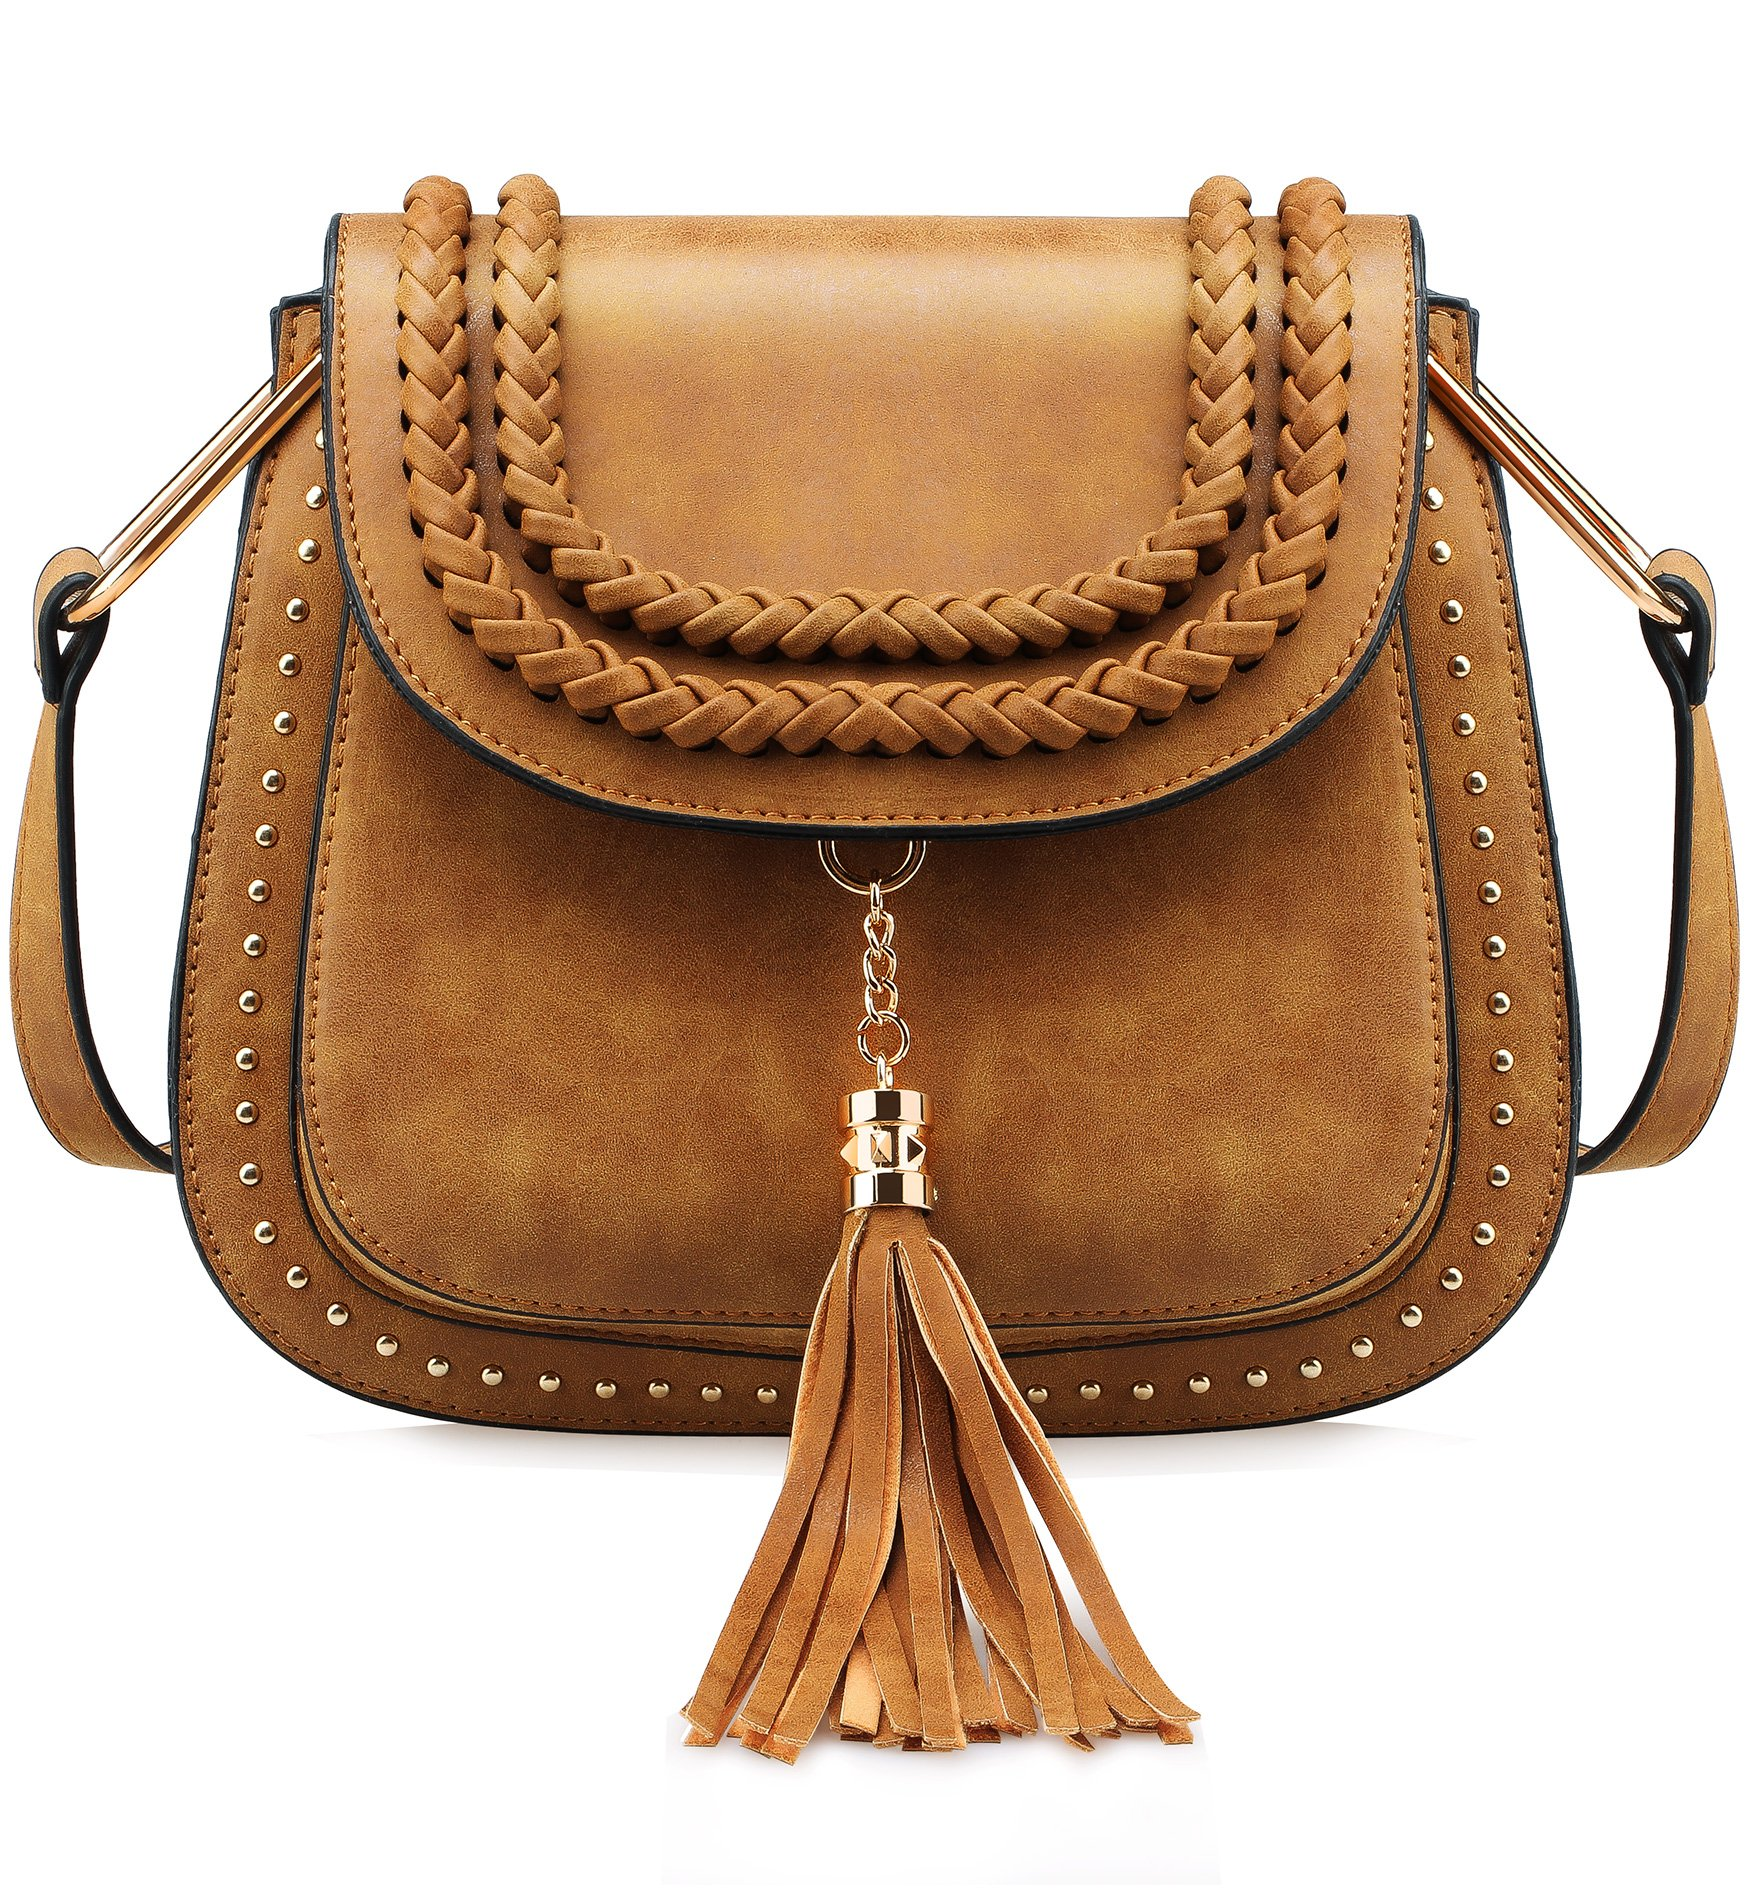 Tom Clovers Womens Vintage Tassel Saddle Shoulder Bag Crossbody Bag Sling Bag Shopping Travel Satchel Brown